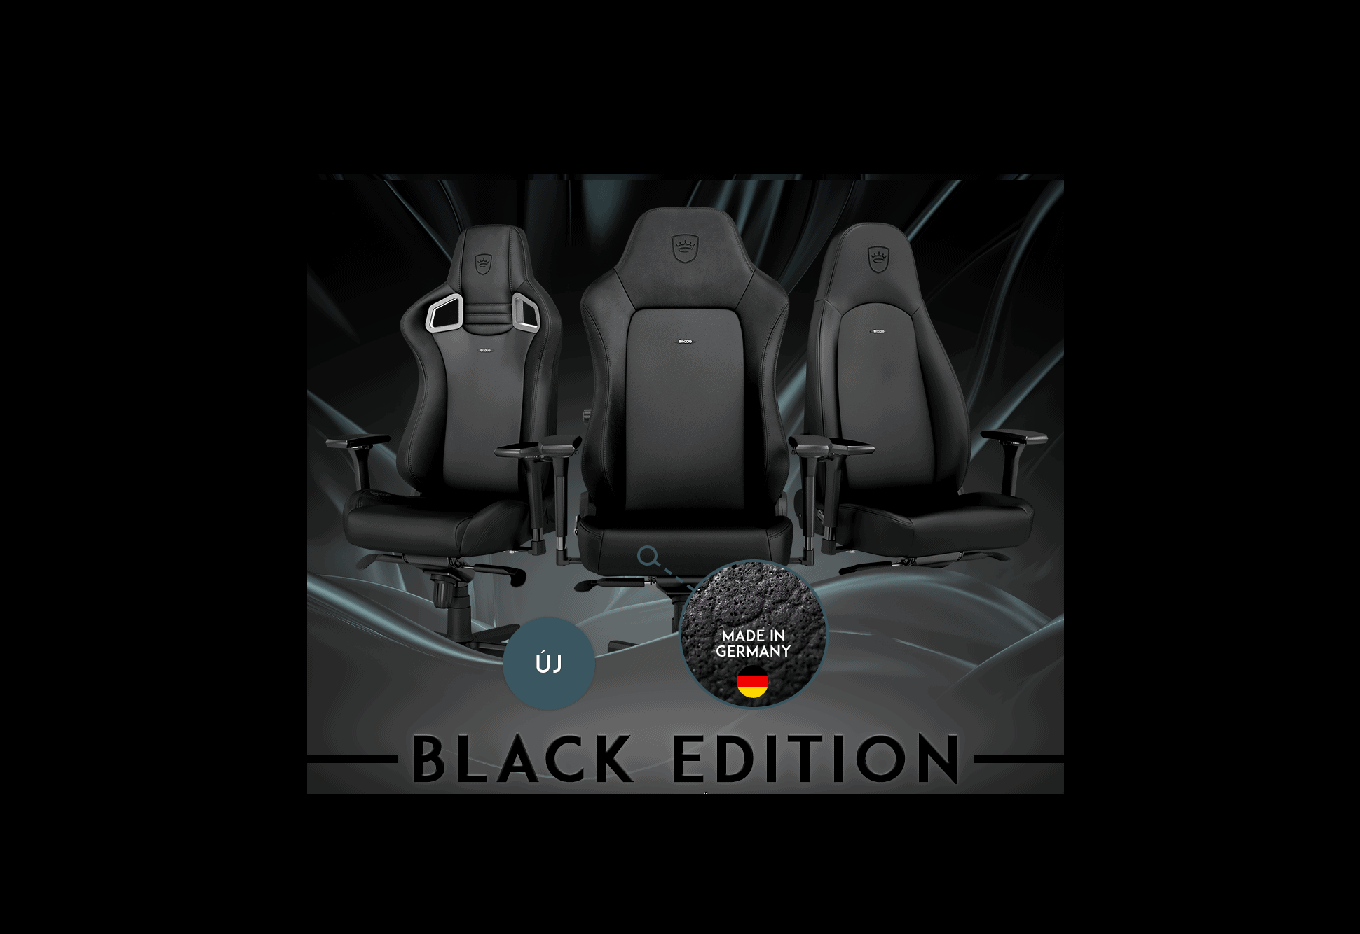 noblechairs Black Edition!